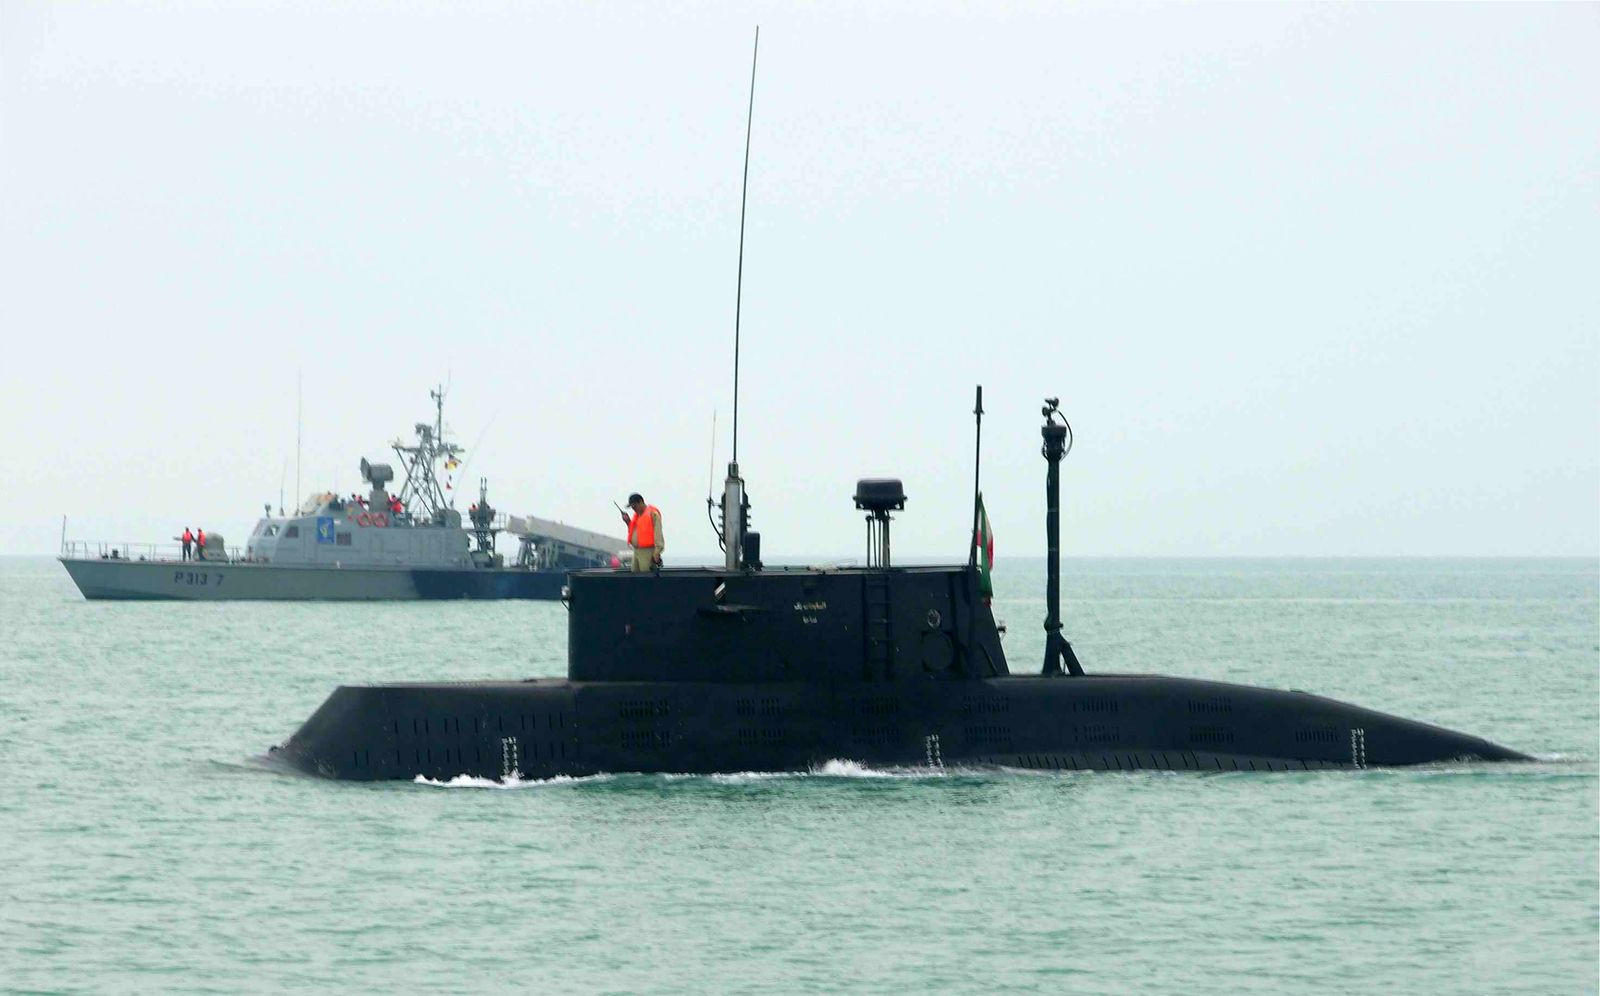 Iran's Mini-Submarine Fleet Can Sink Warships (Thanks to North Korea)